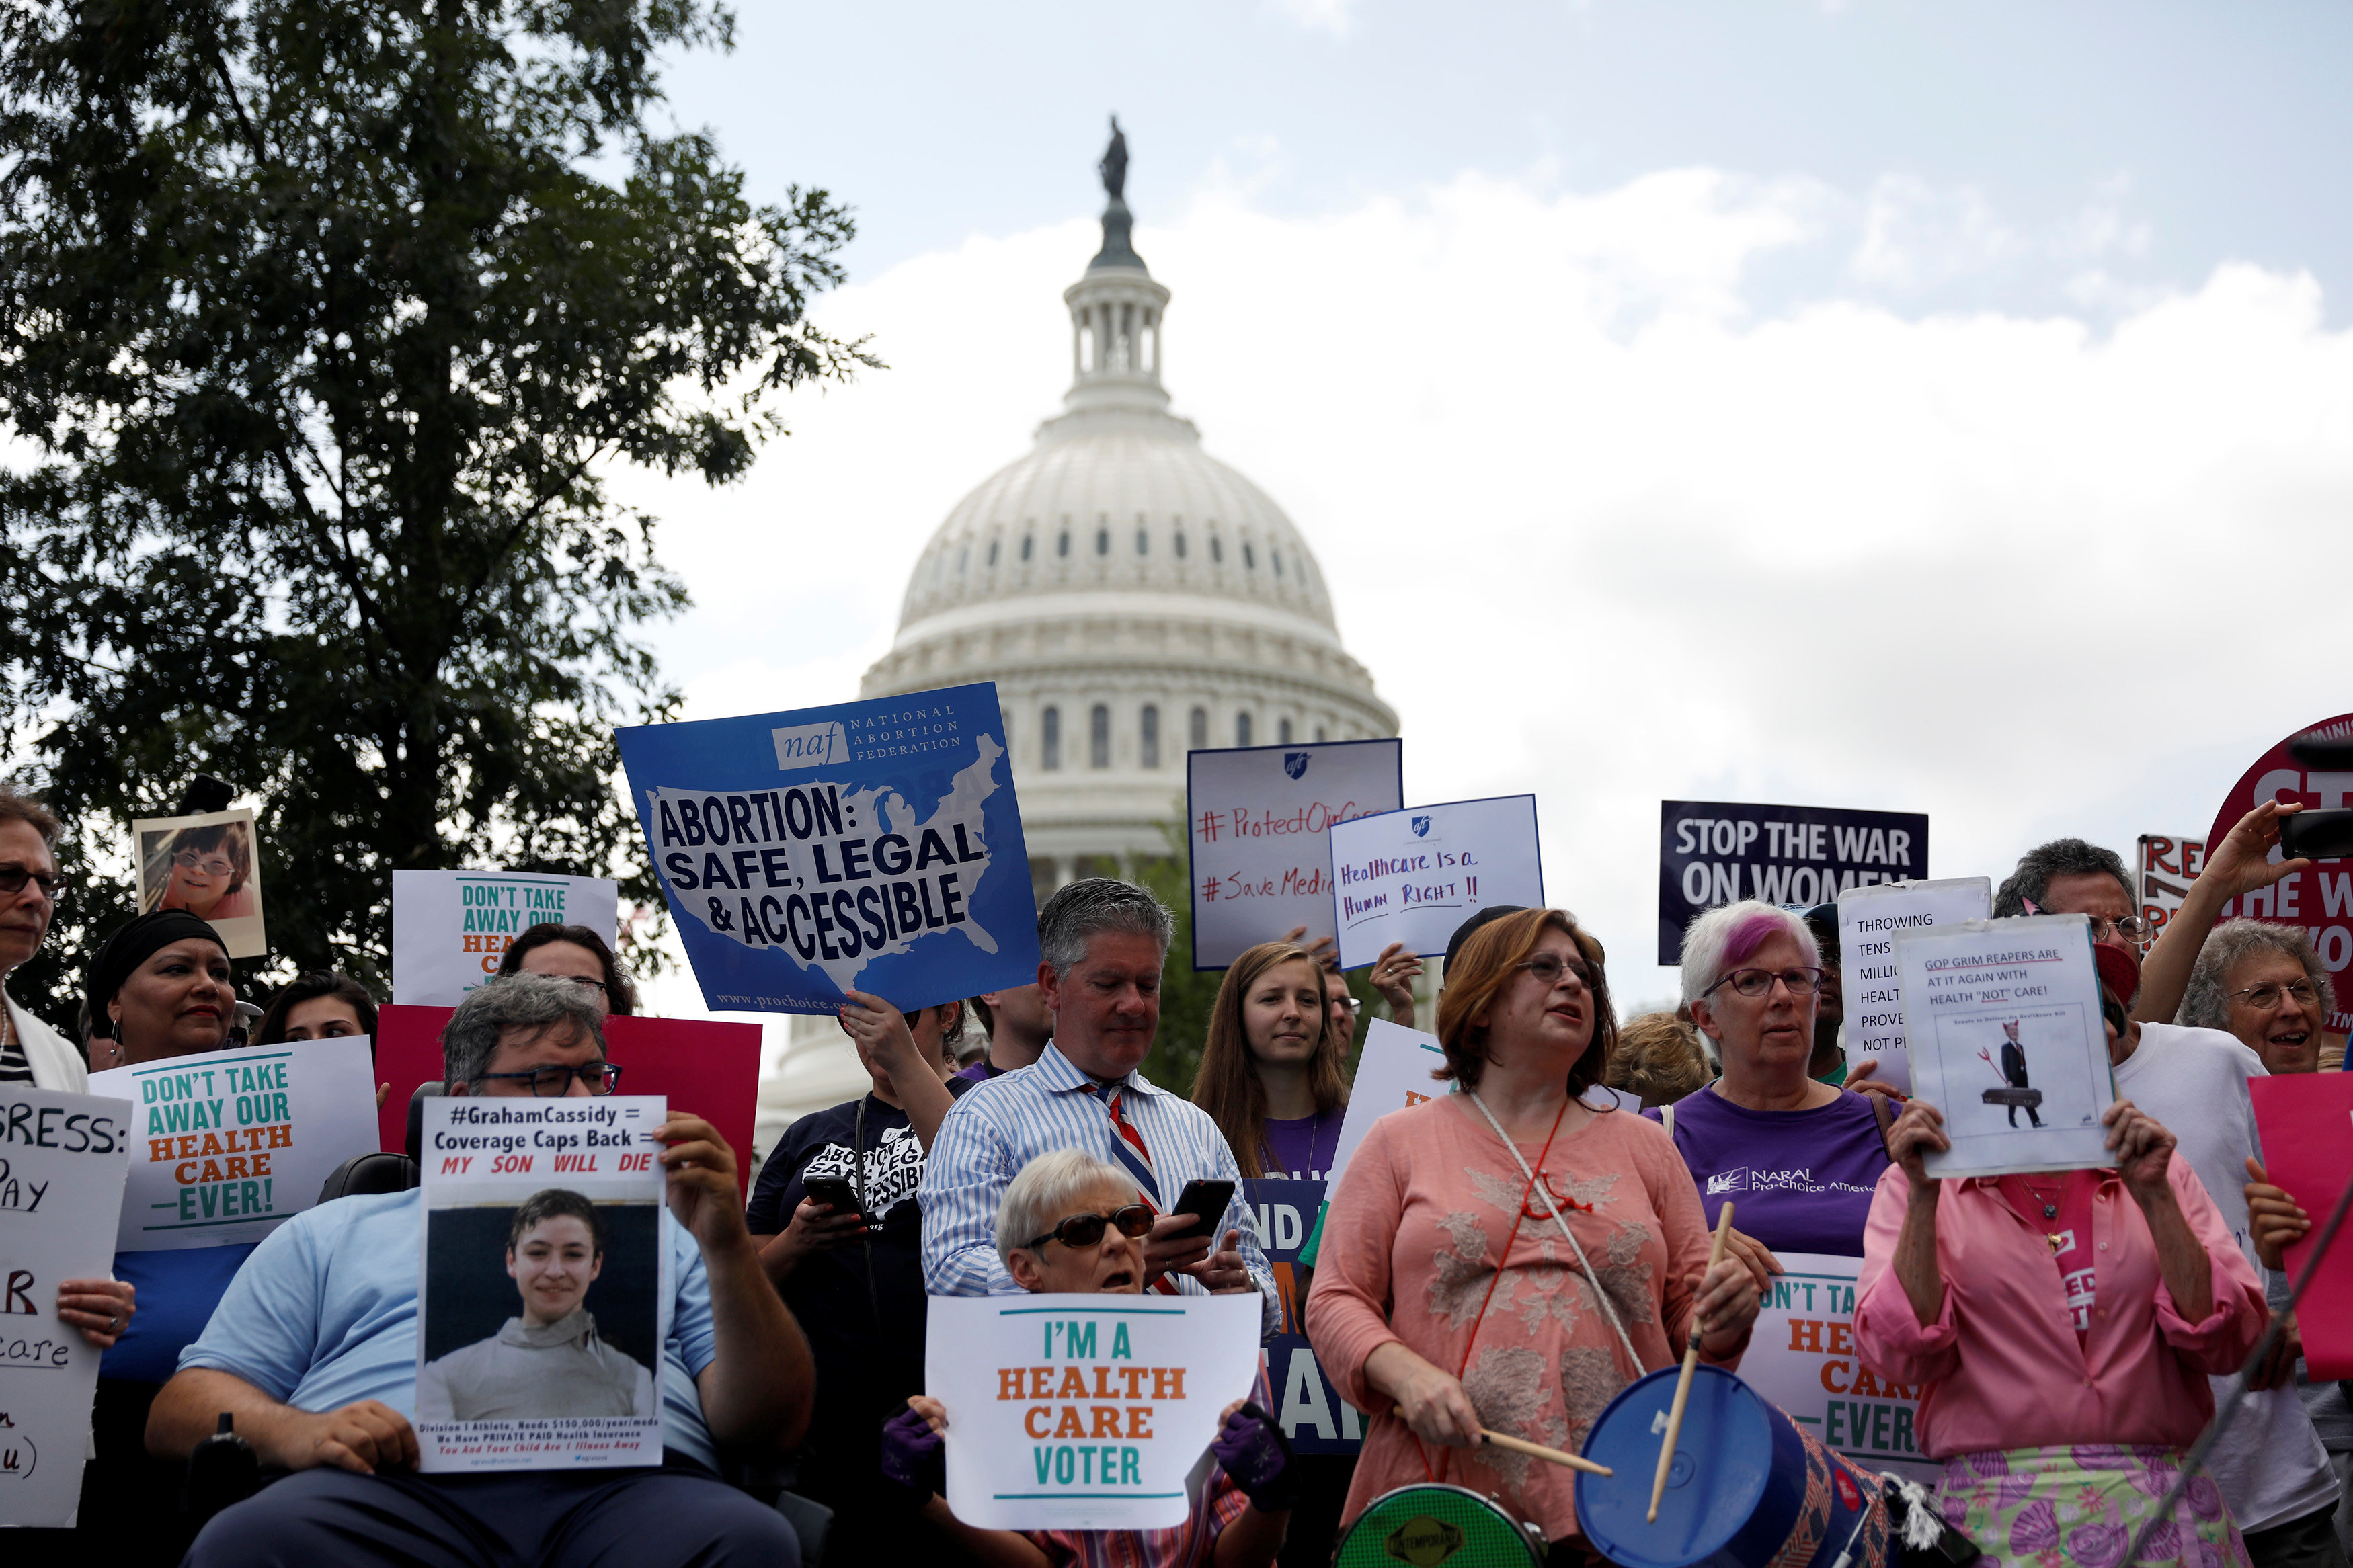 Activists participate in a rally to protect the Affordable Care Act outside the U.S. Capitol in Washington, U.S., September 19, 2017. REUTERS/Aaron P. Bernstein